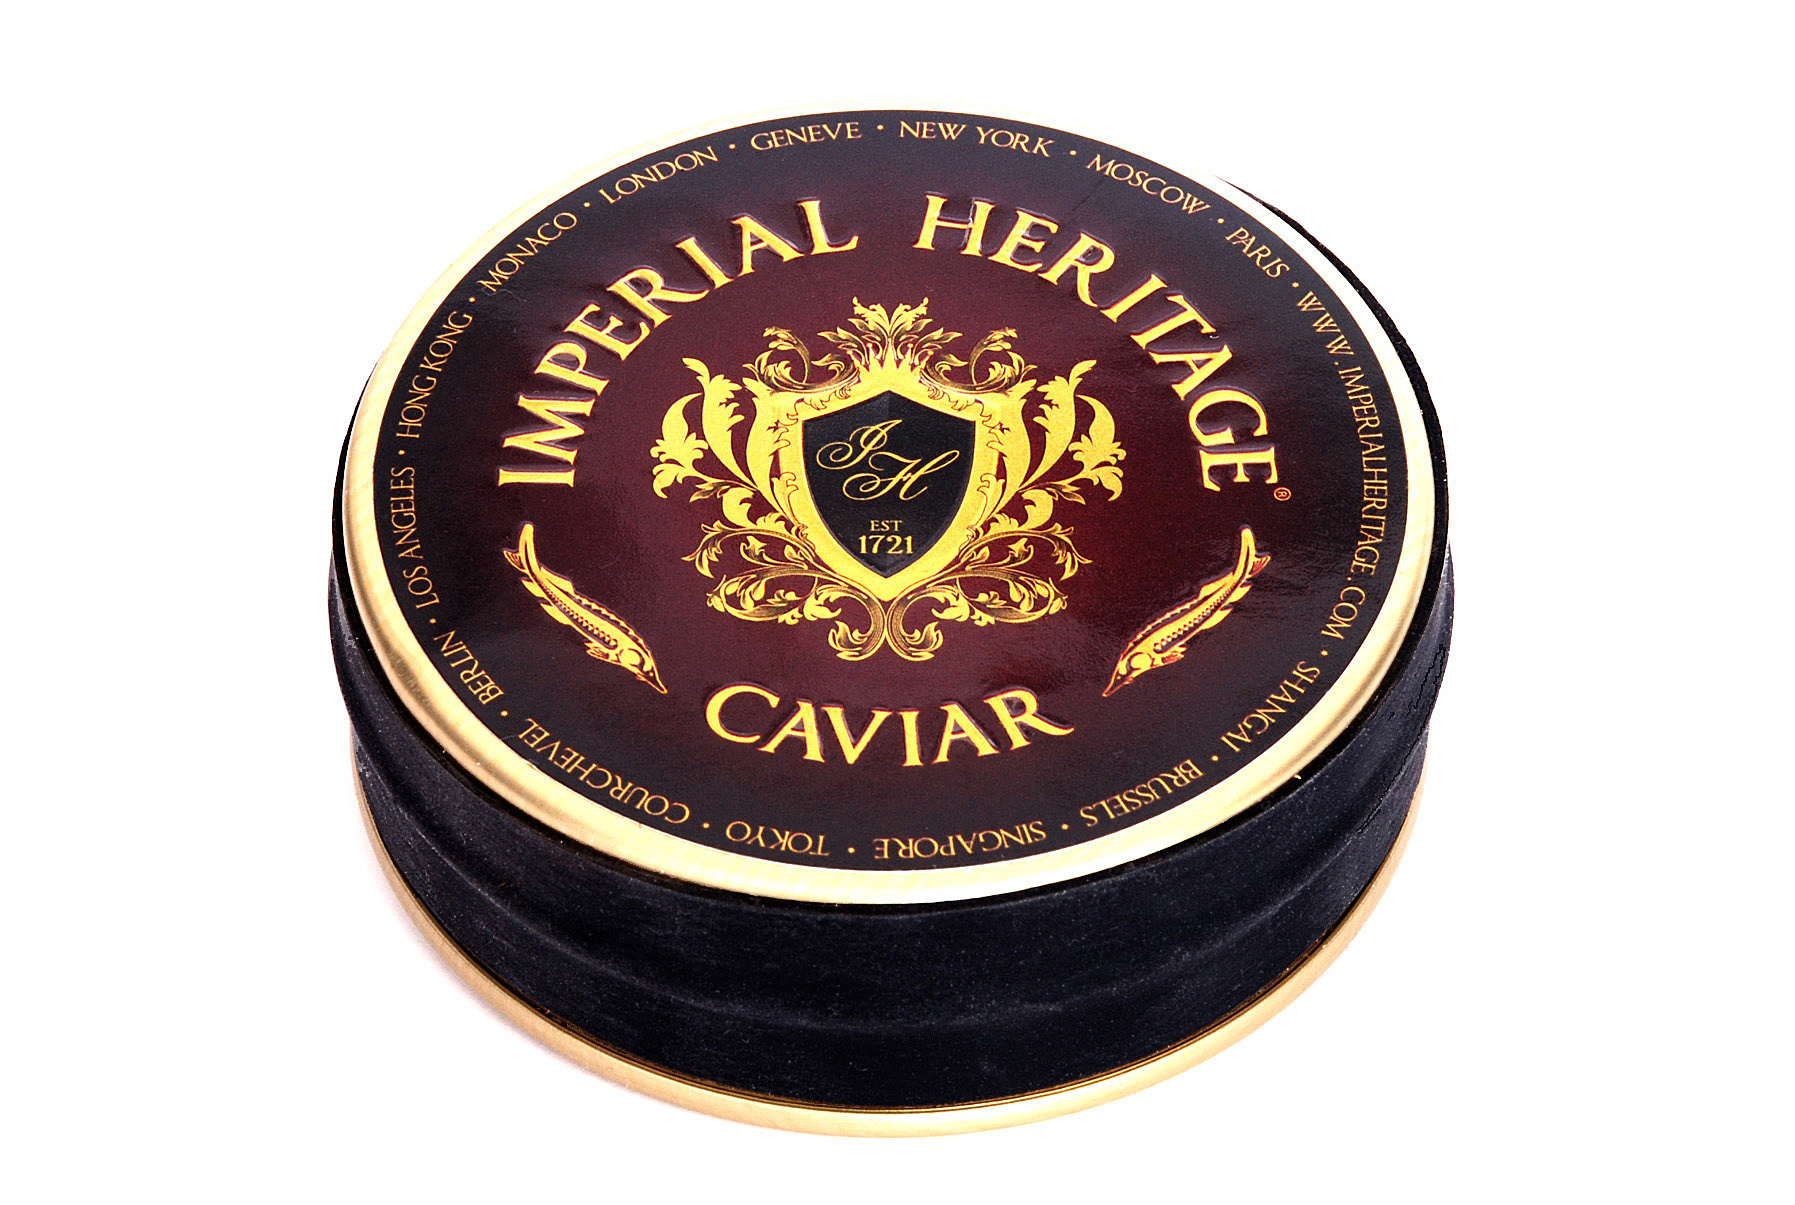 Imperial Heritage Caviar Connoisseurs  (Rood label)